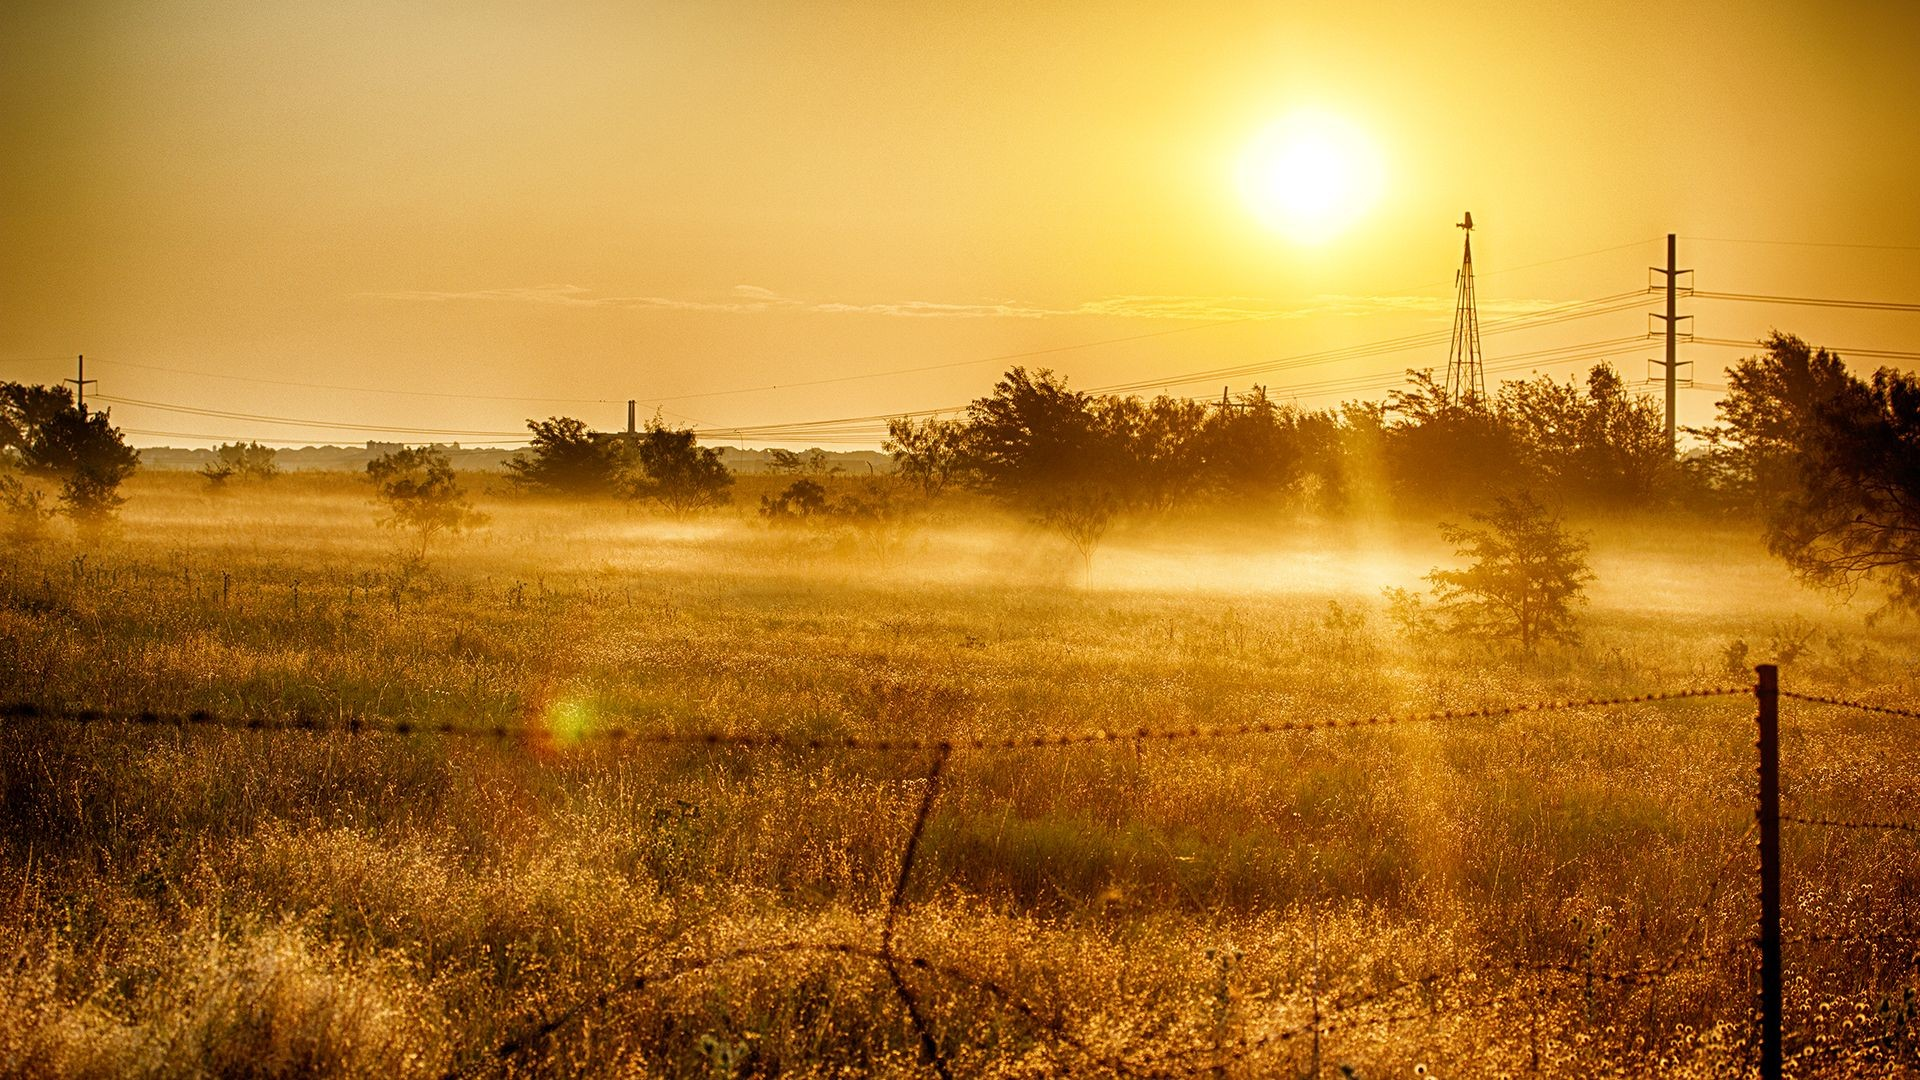 Res: 1920x1080, country setting wallpaper | Country Sunrise HD Wallpaper - HD Wallpapers